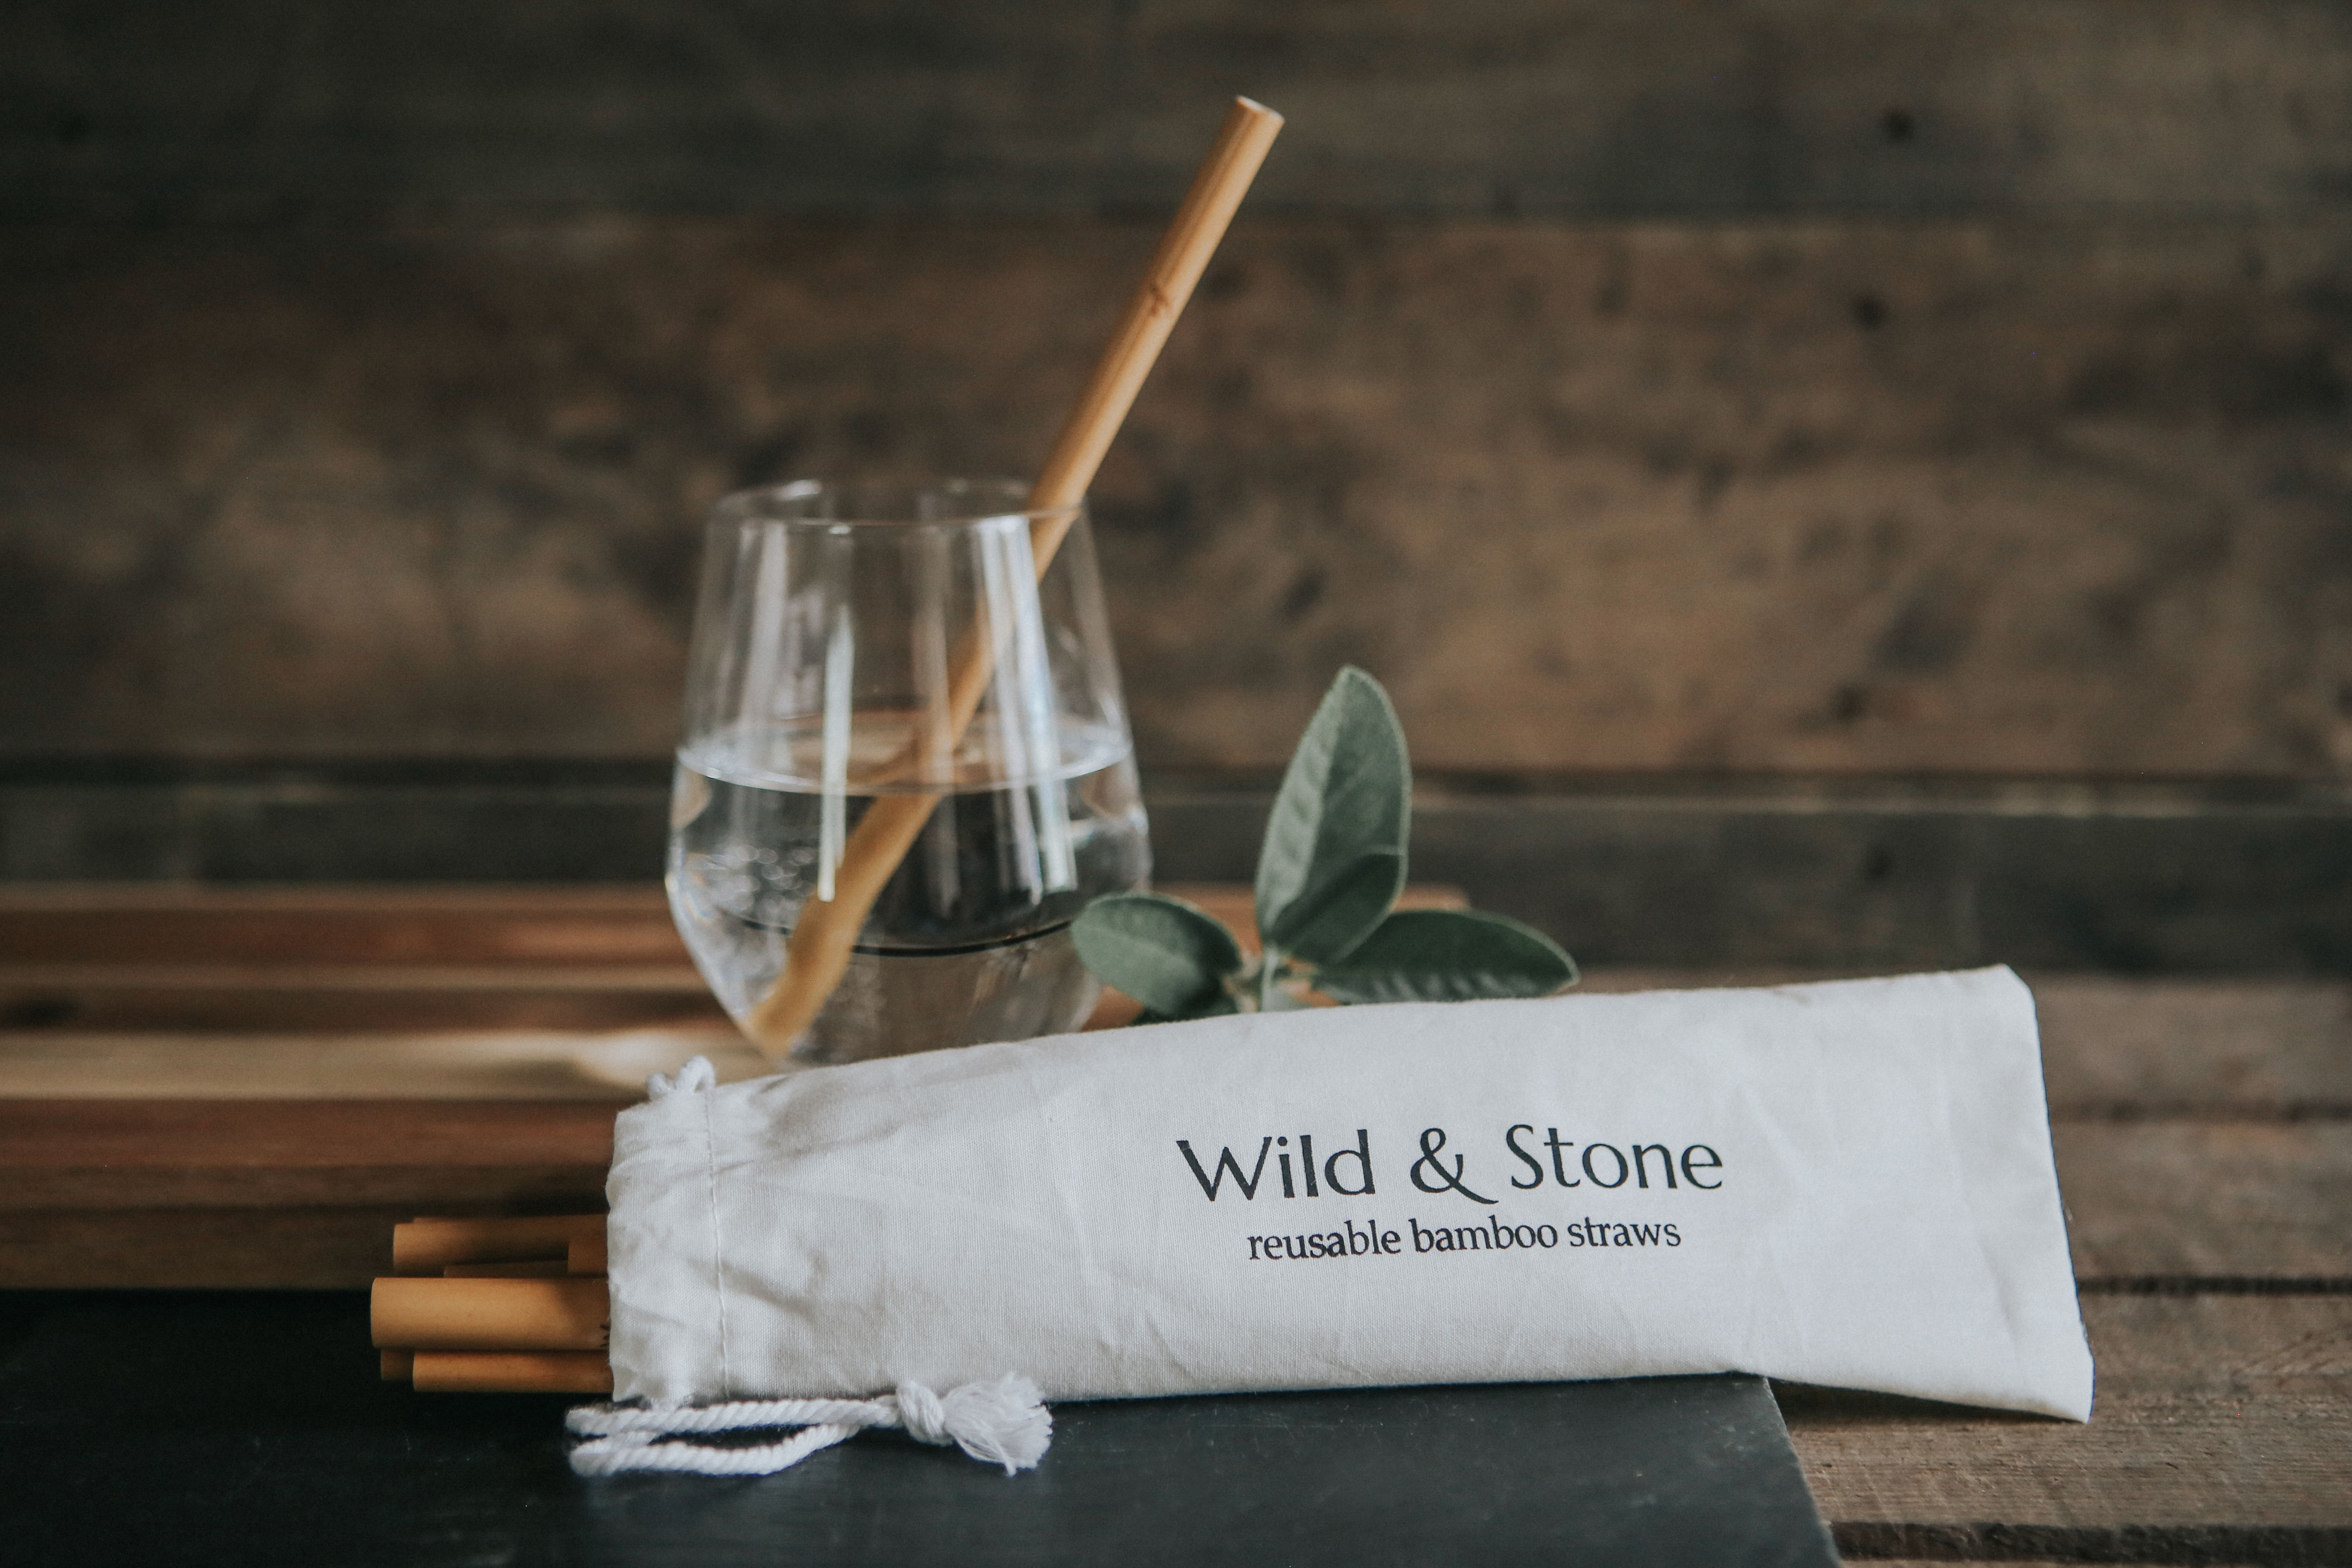 Wild & Stone's packaging